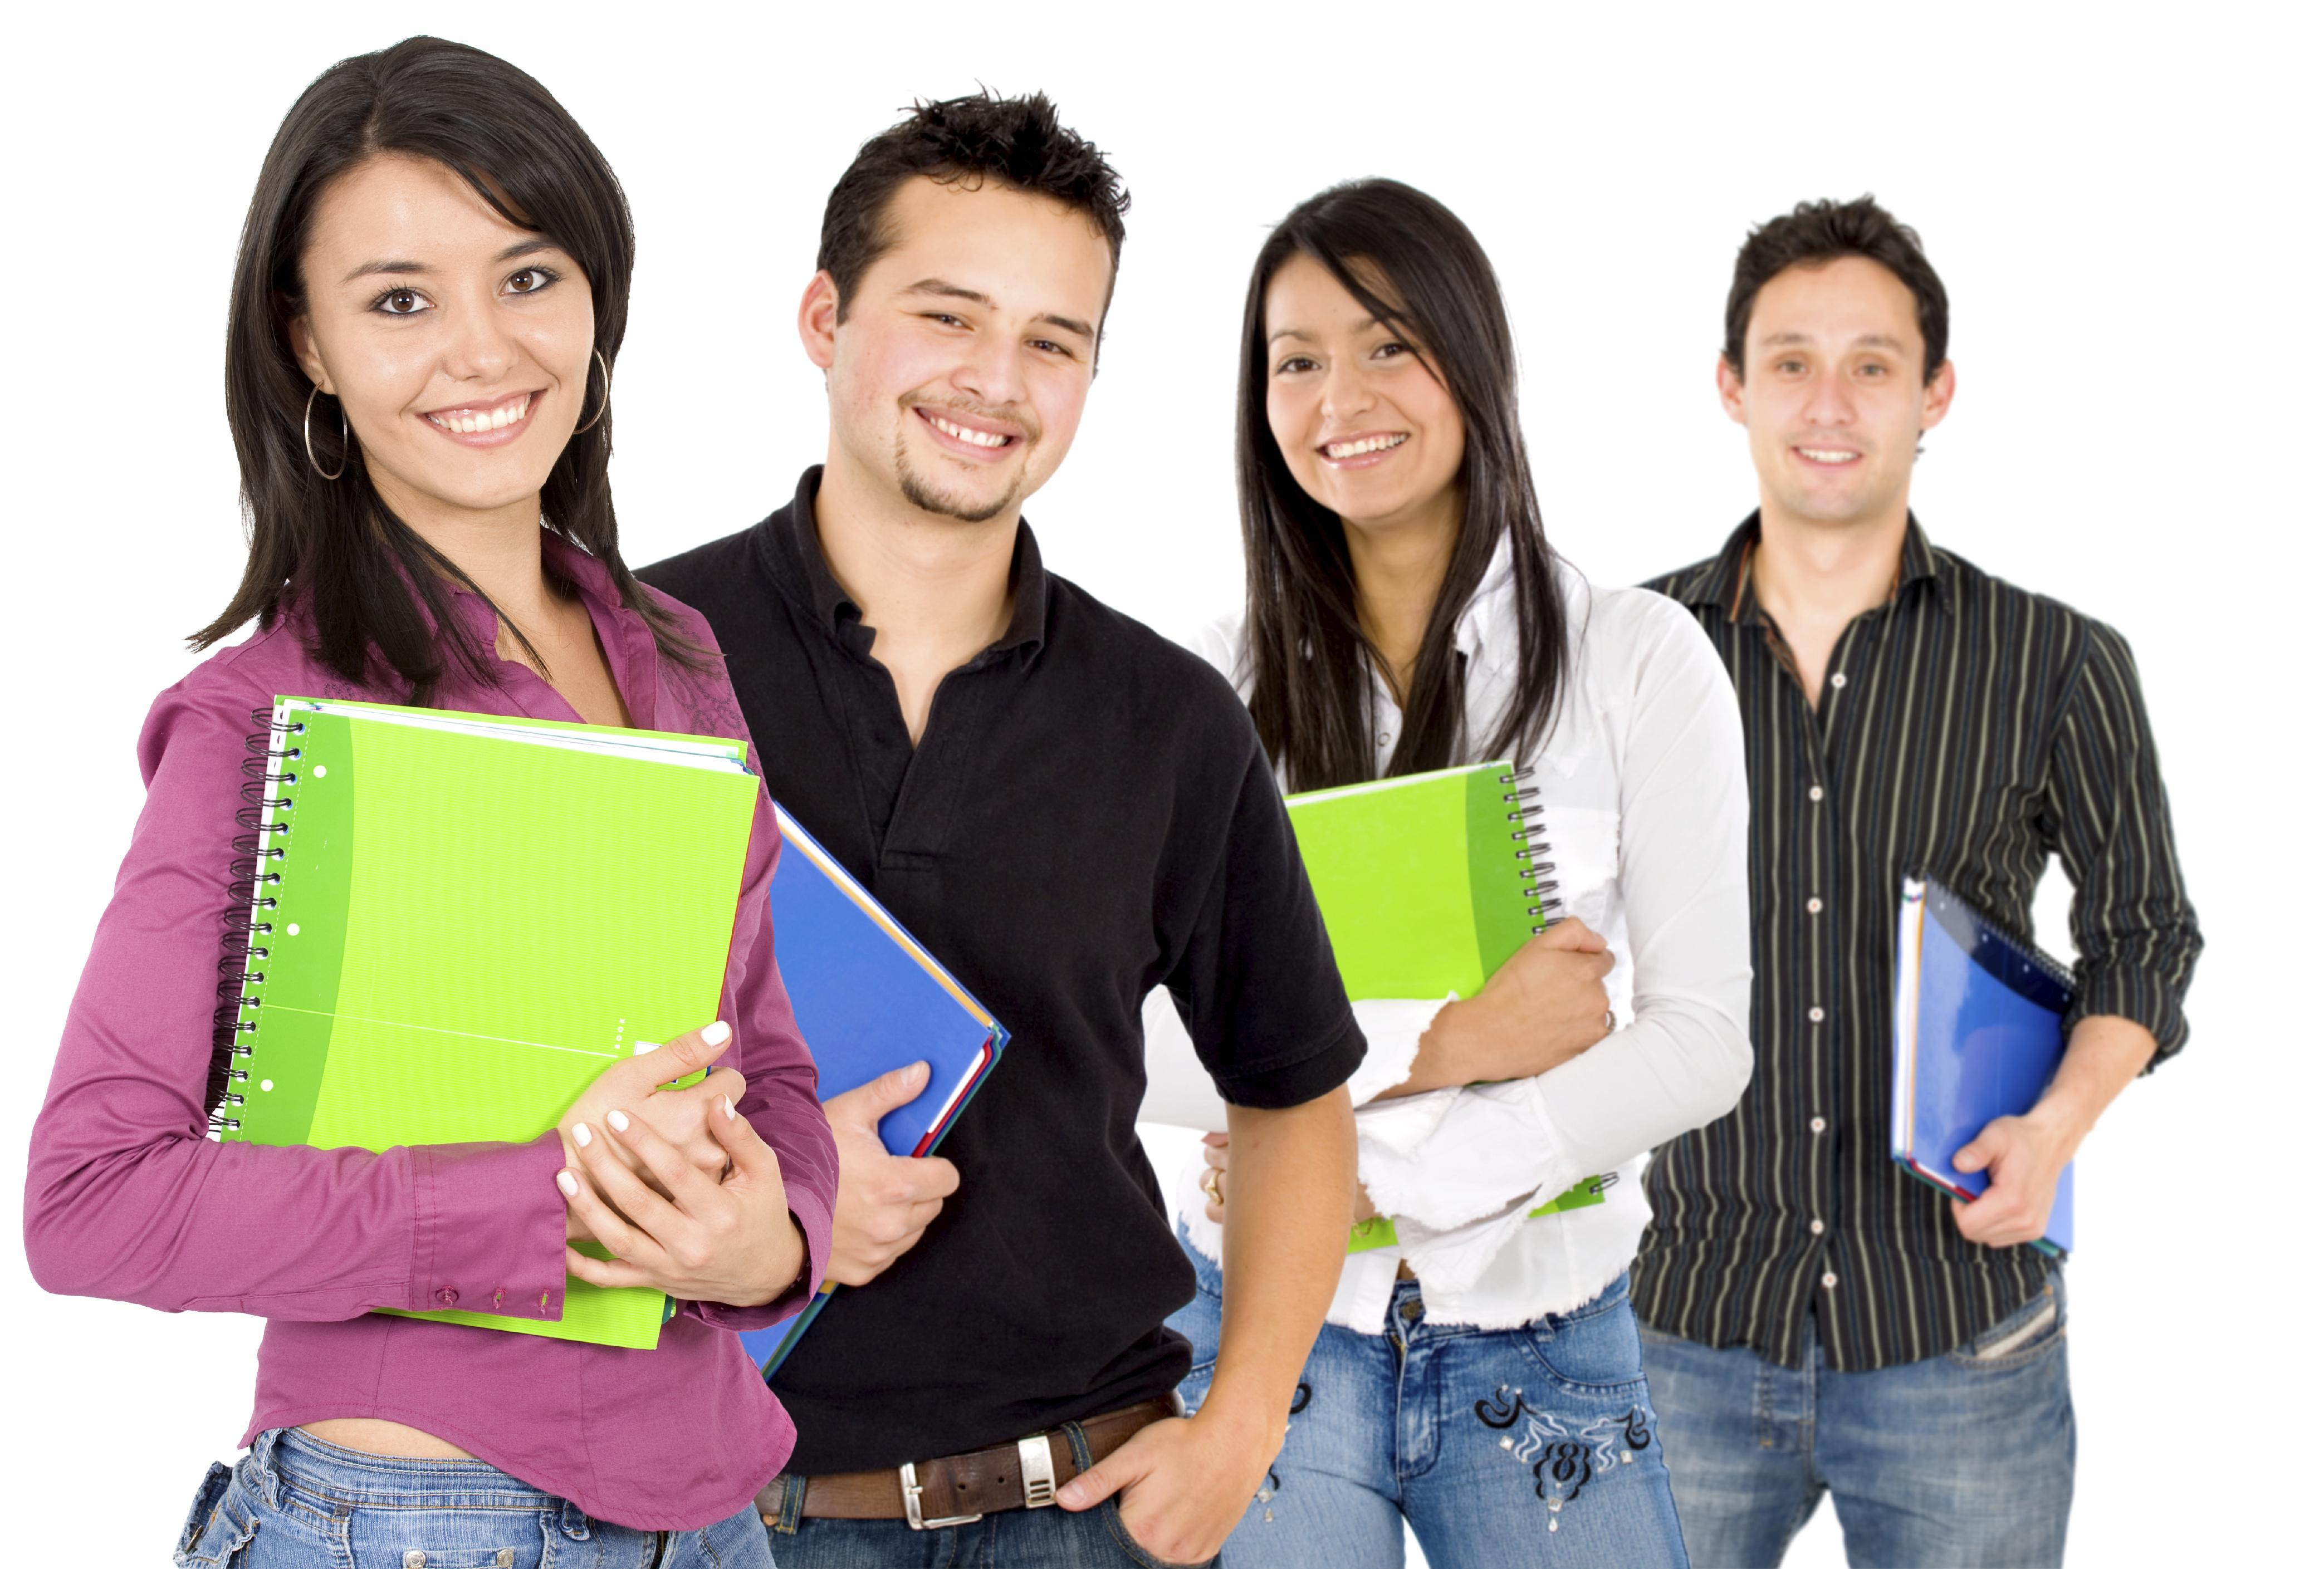 college study groups - HD1600×1081